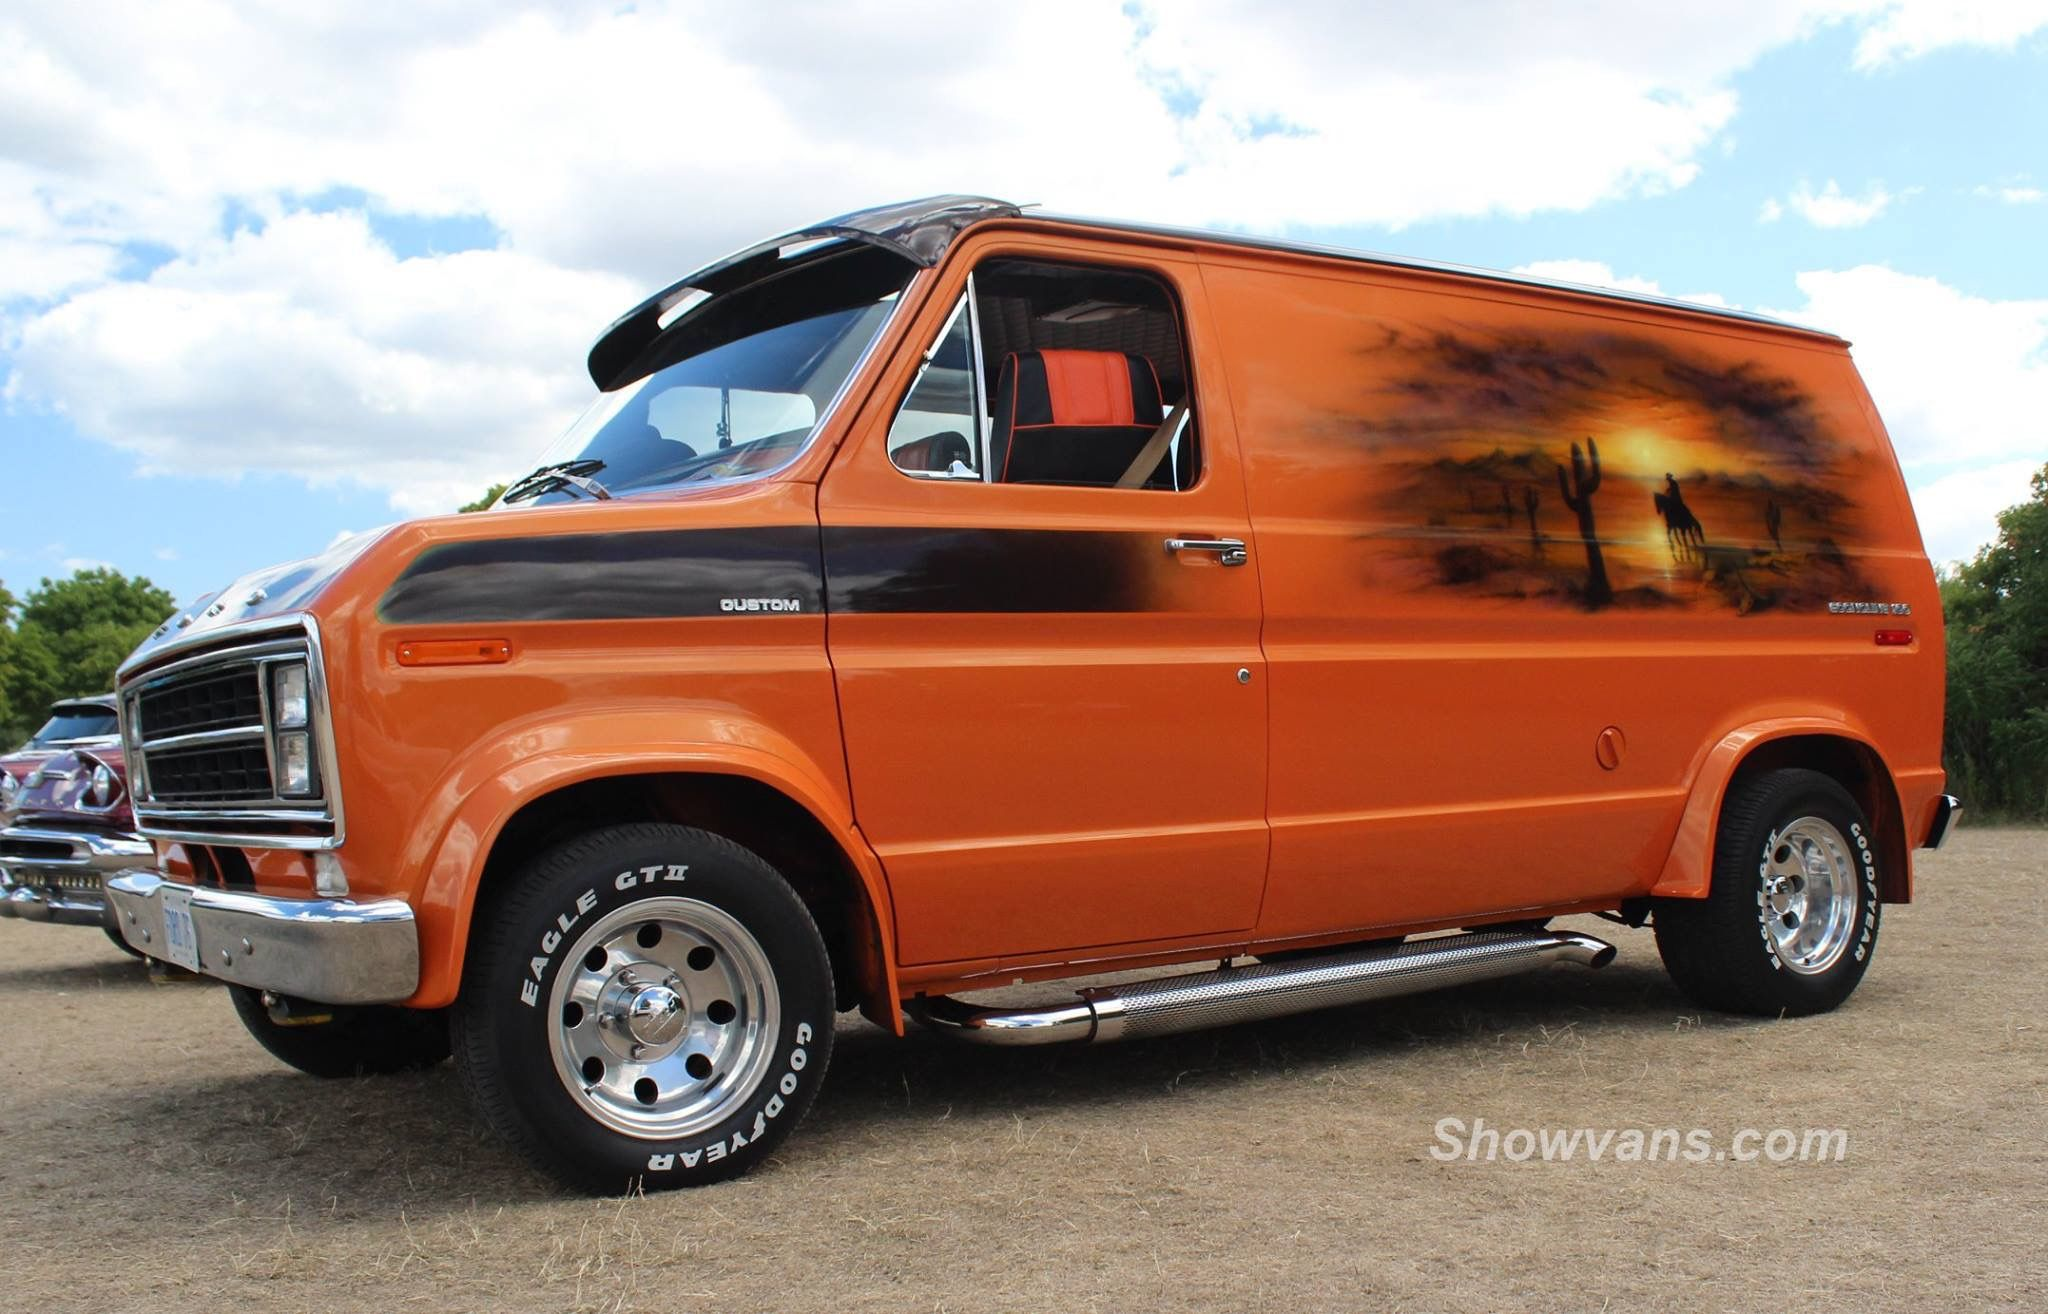 Custom 70 S Ford Van With Images Custom Vans Ford Van Cool Vans